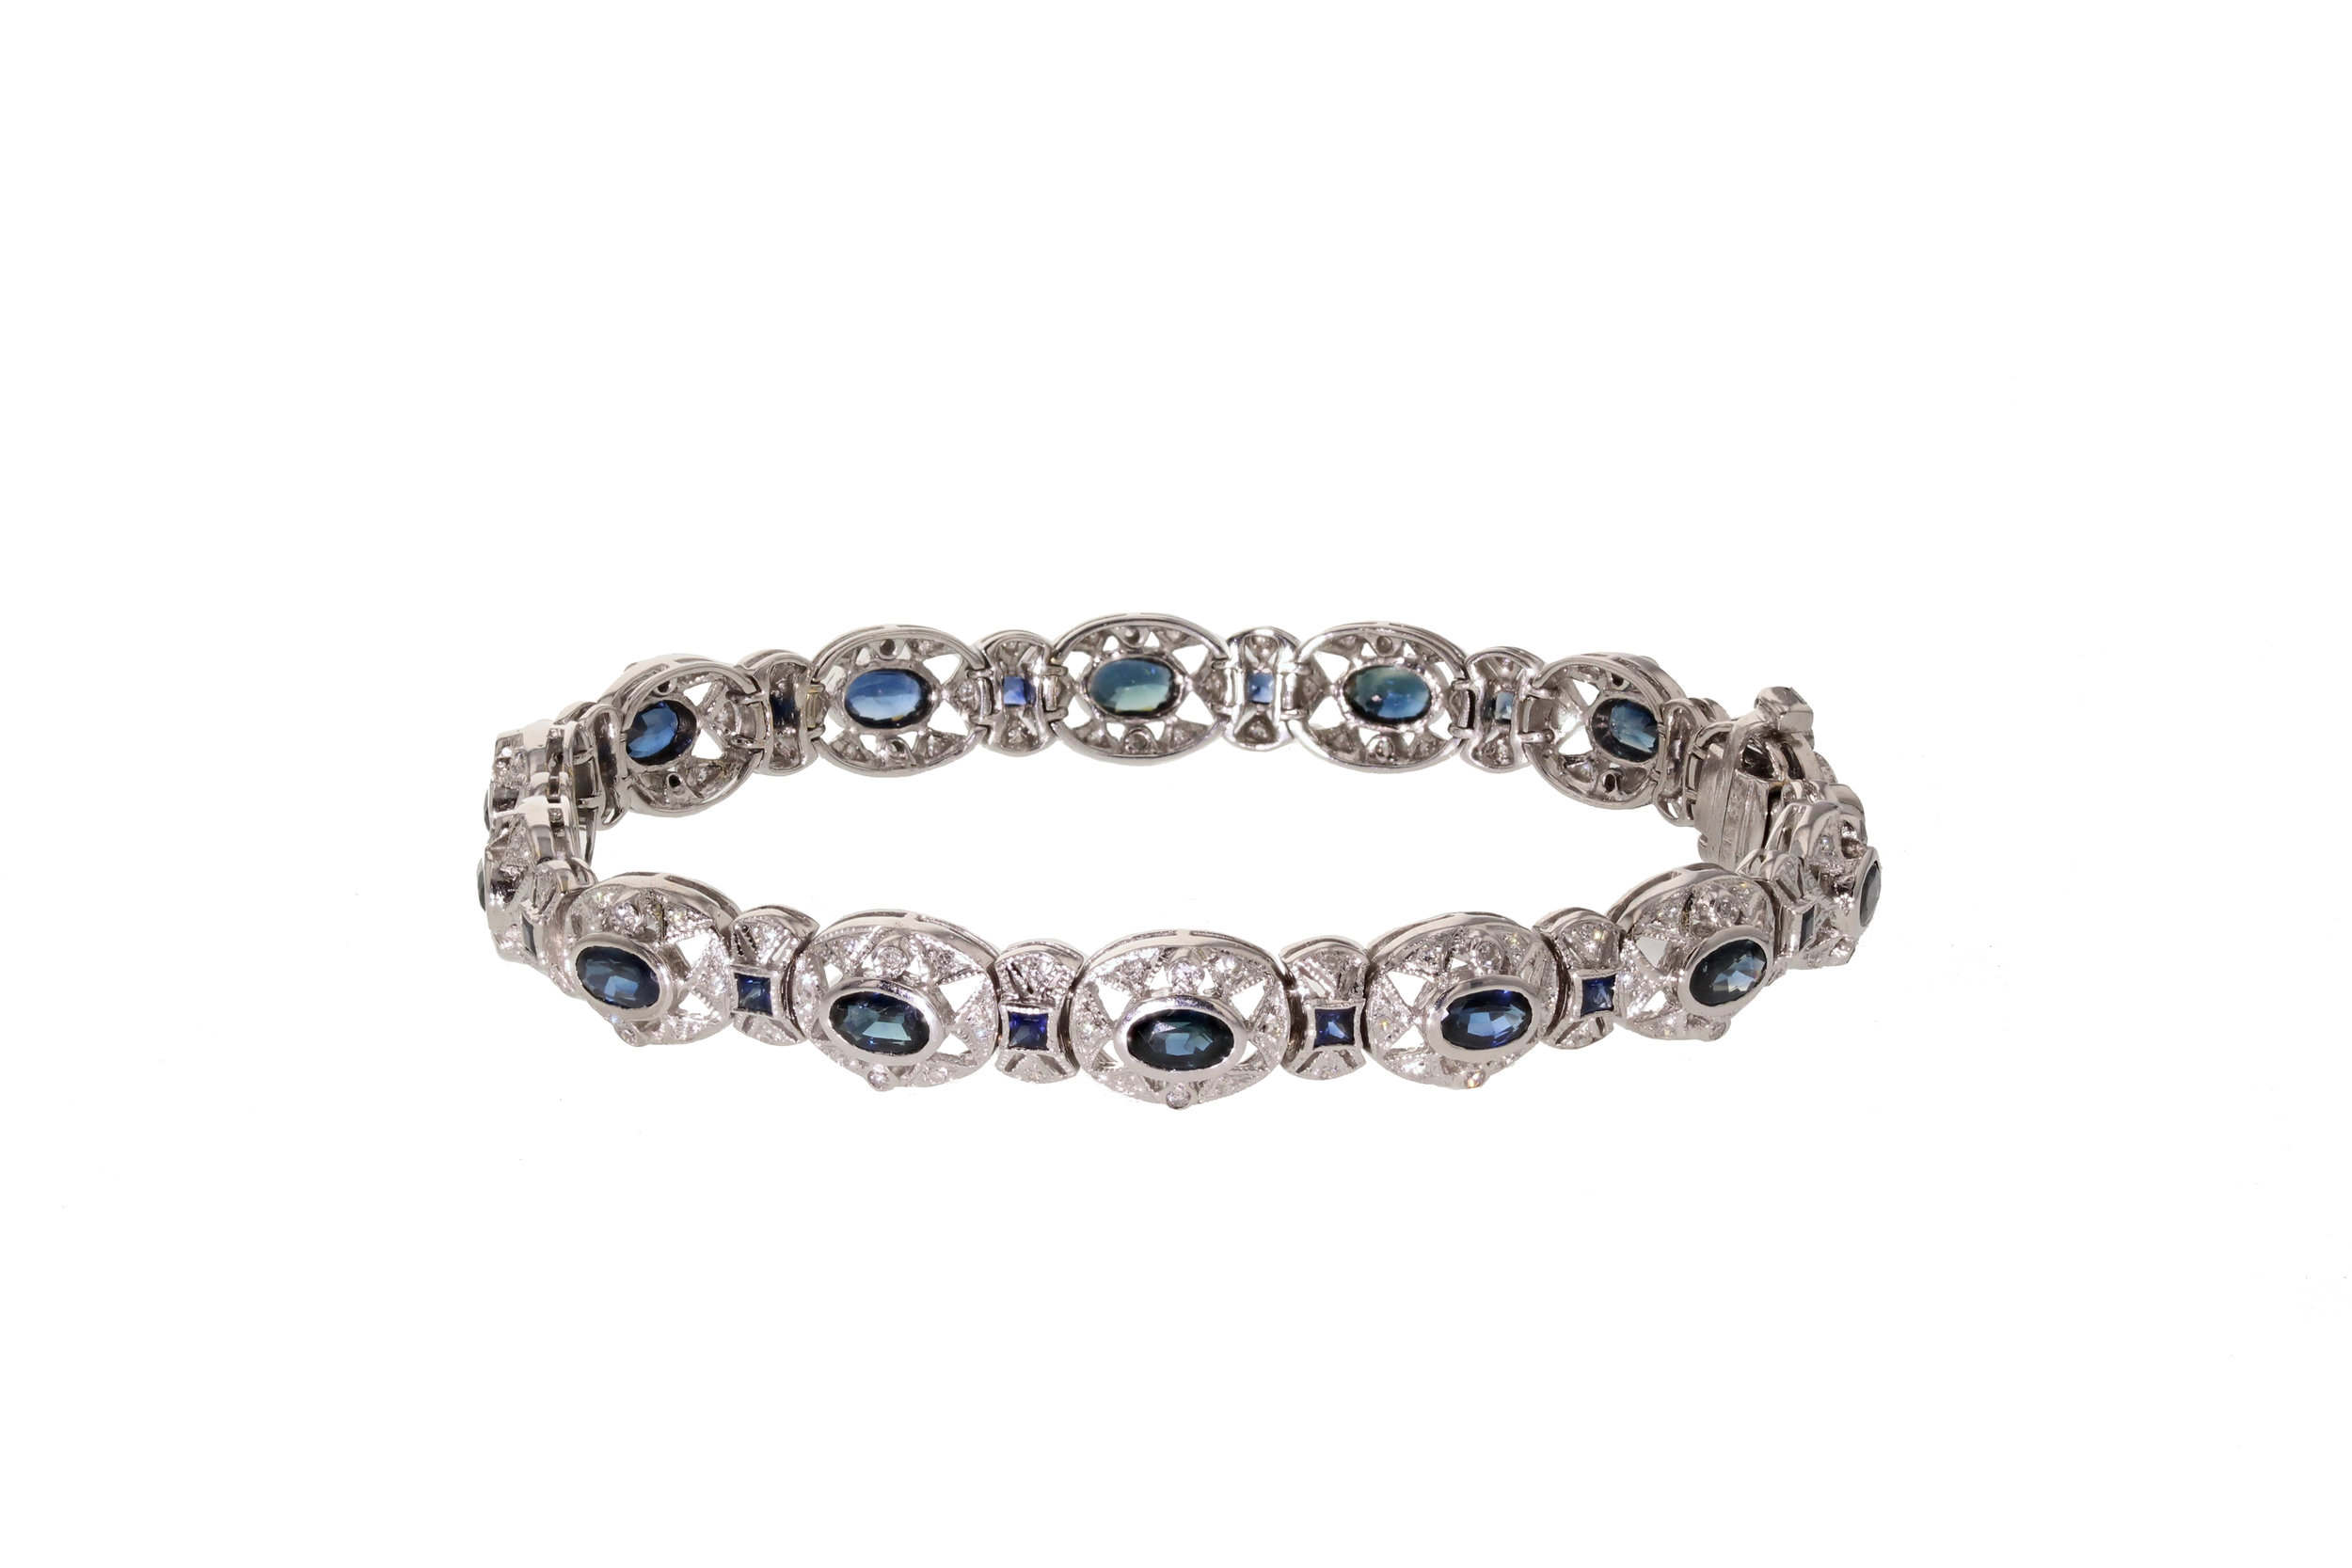 14kt White Gold Sapphire and Diamond Bracelet with 1.40 tcw diamonds and 5.18 tcw sapphires. $10,100